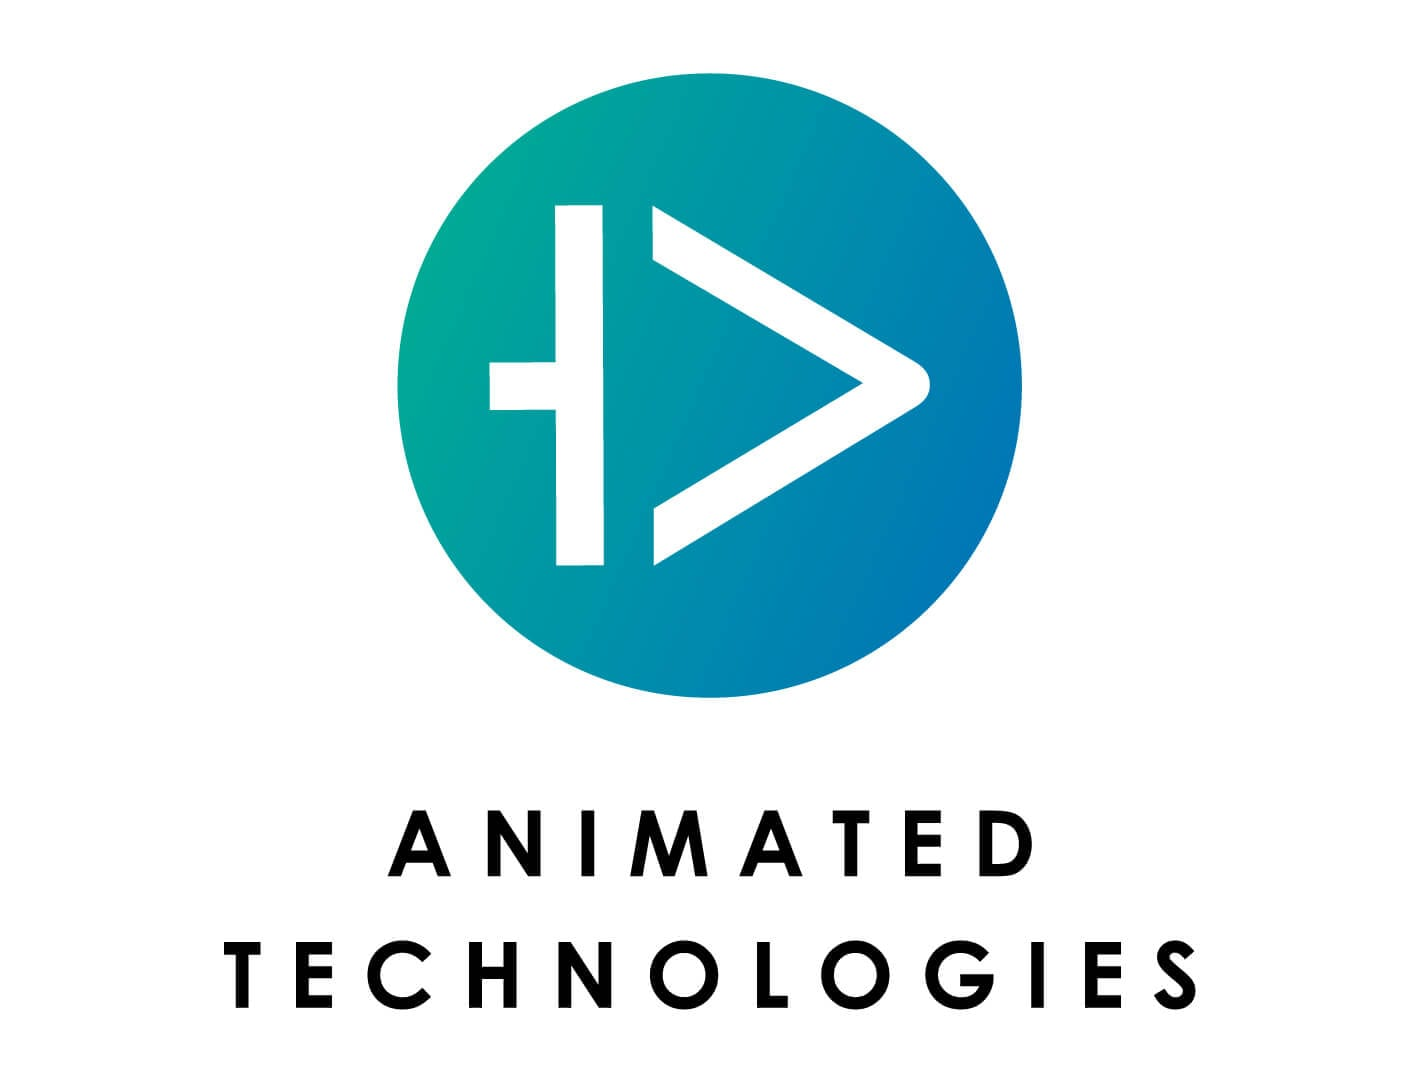 Animated Technologies